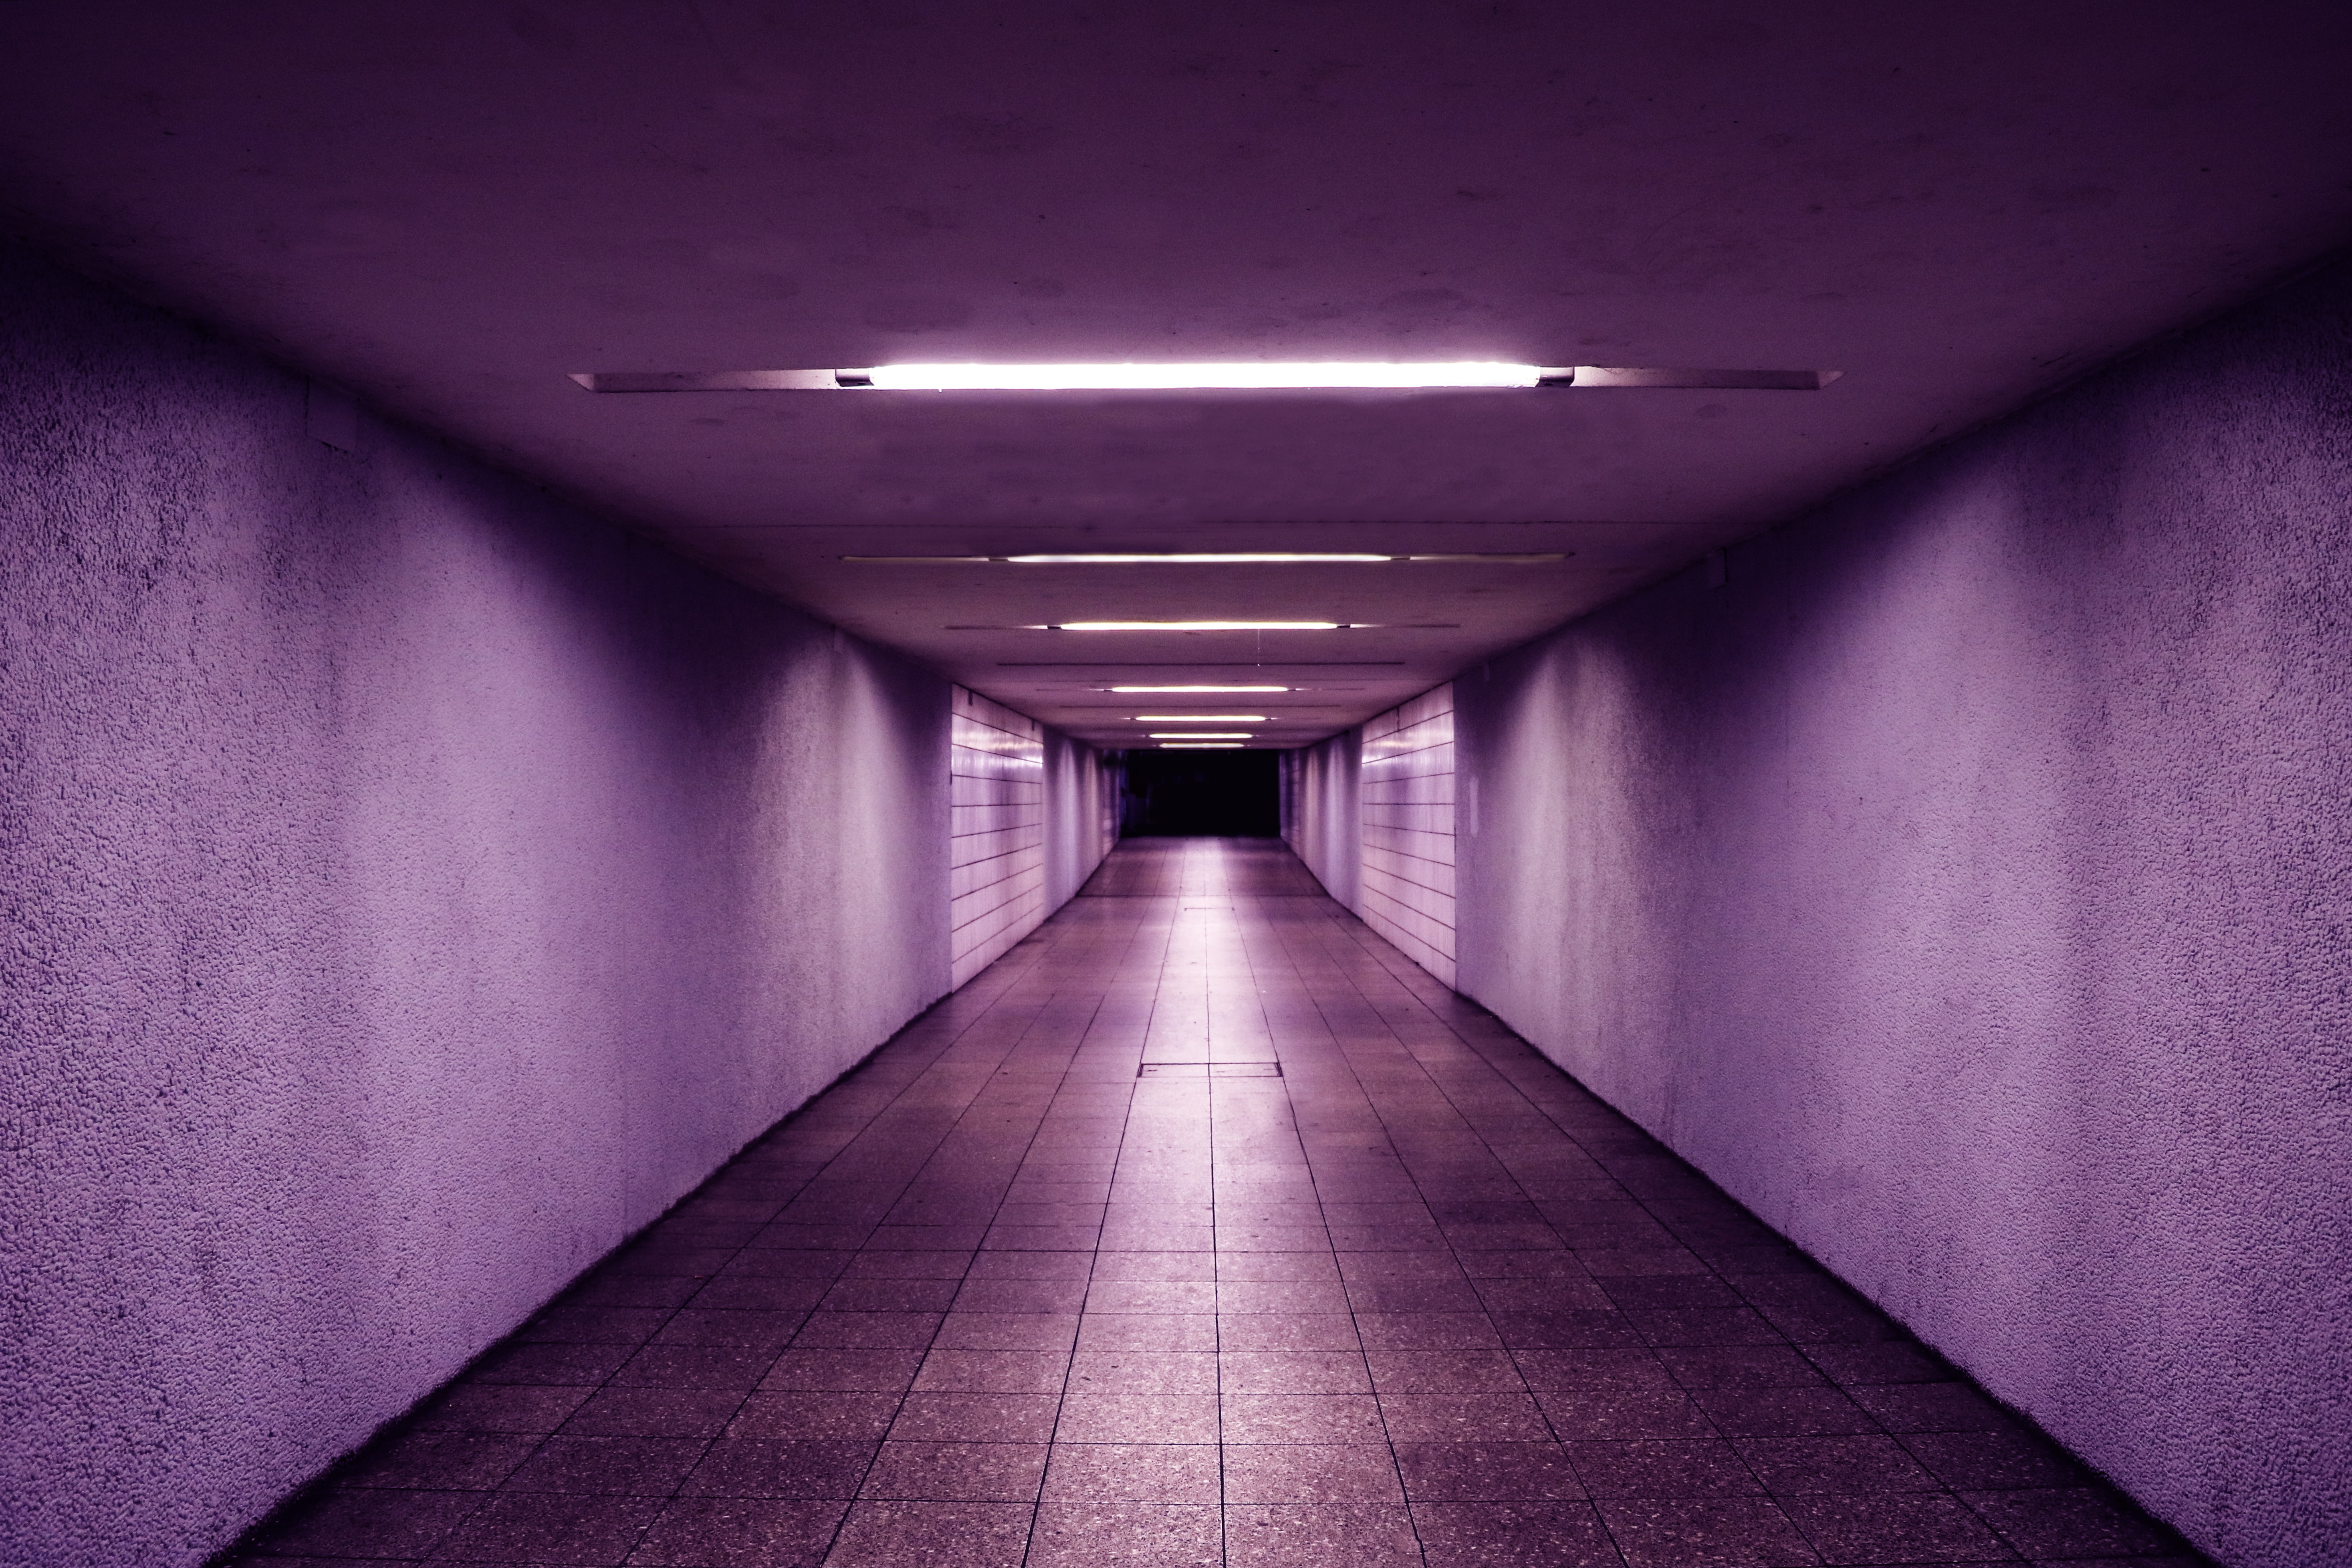 Empty underpass with purple lighting leading to a dark corridor